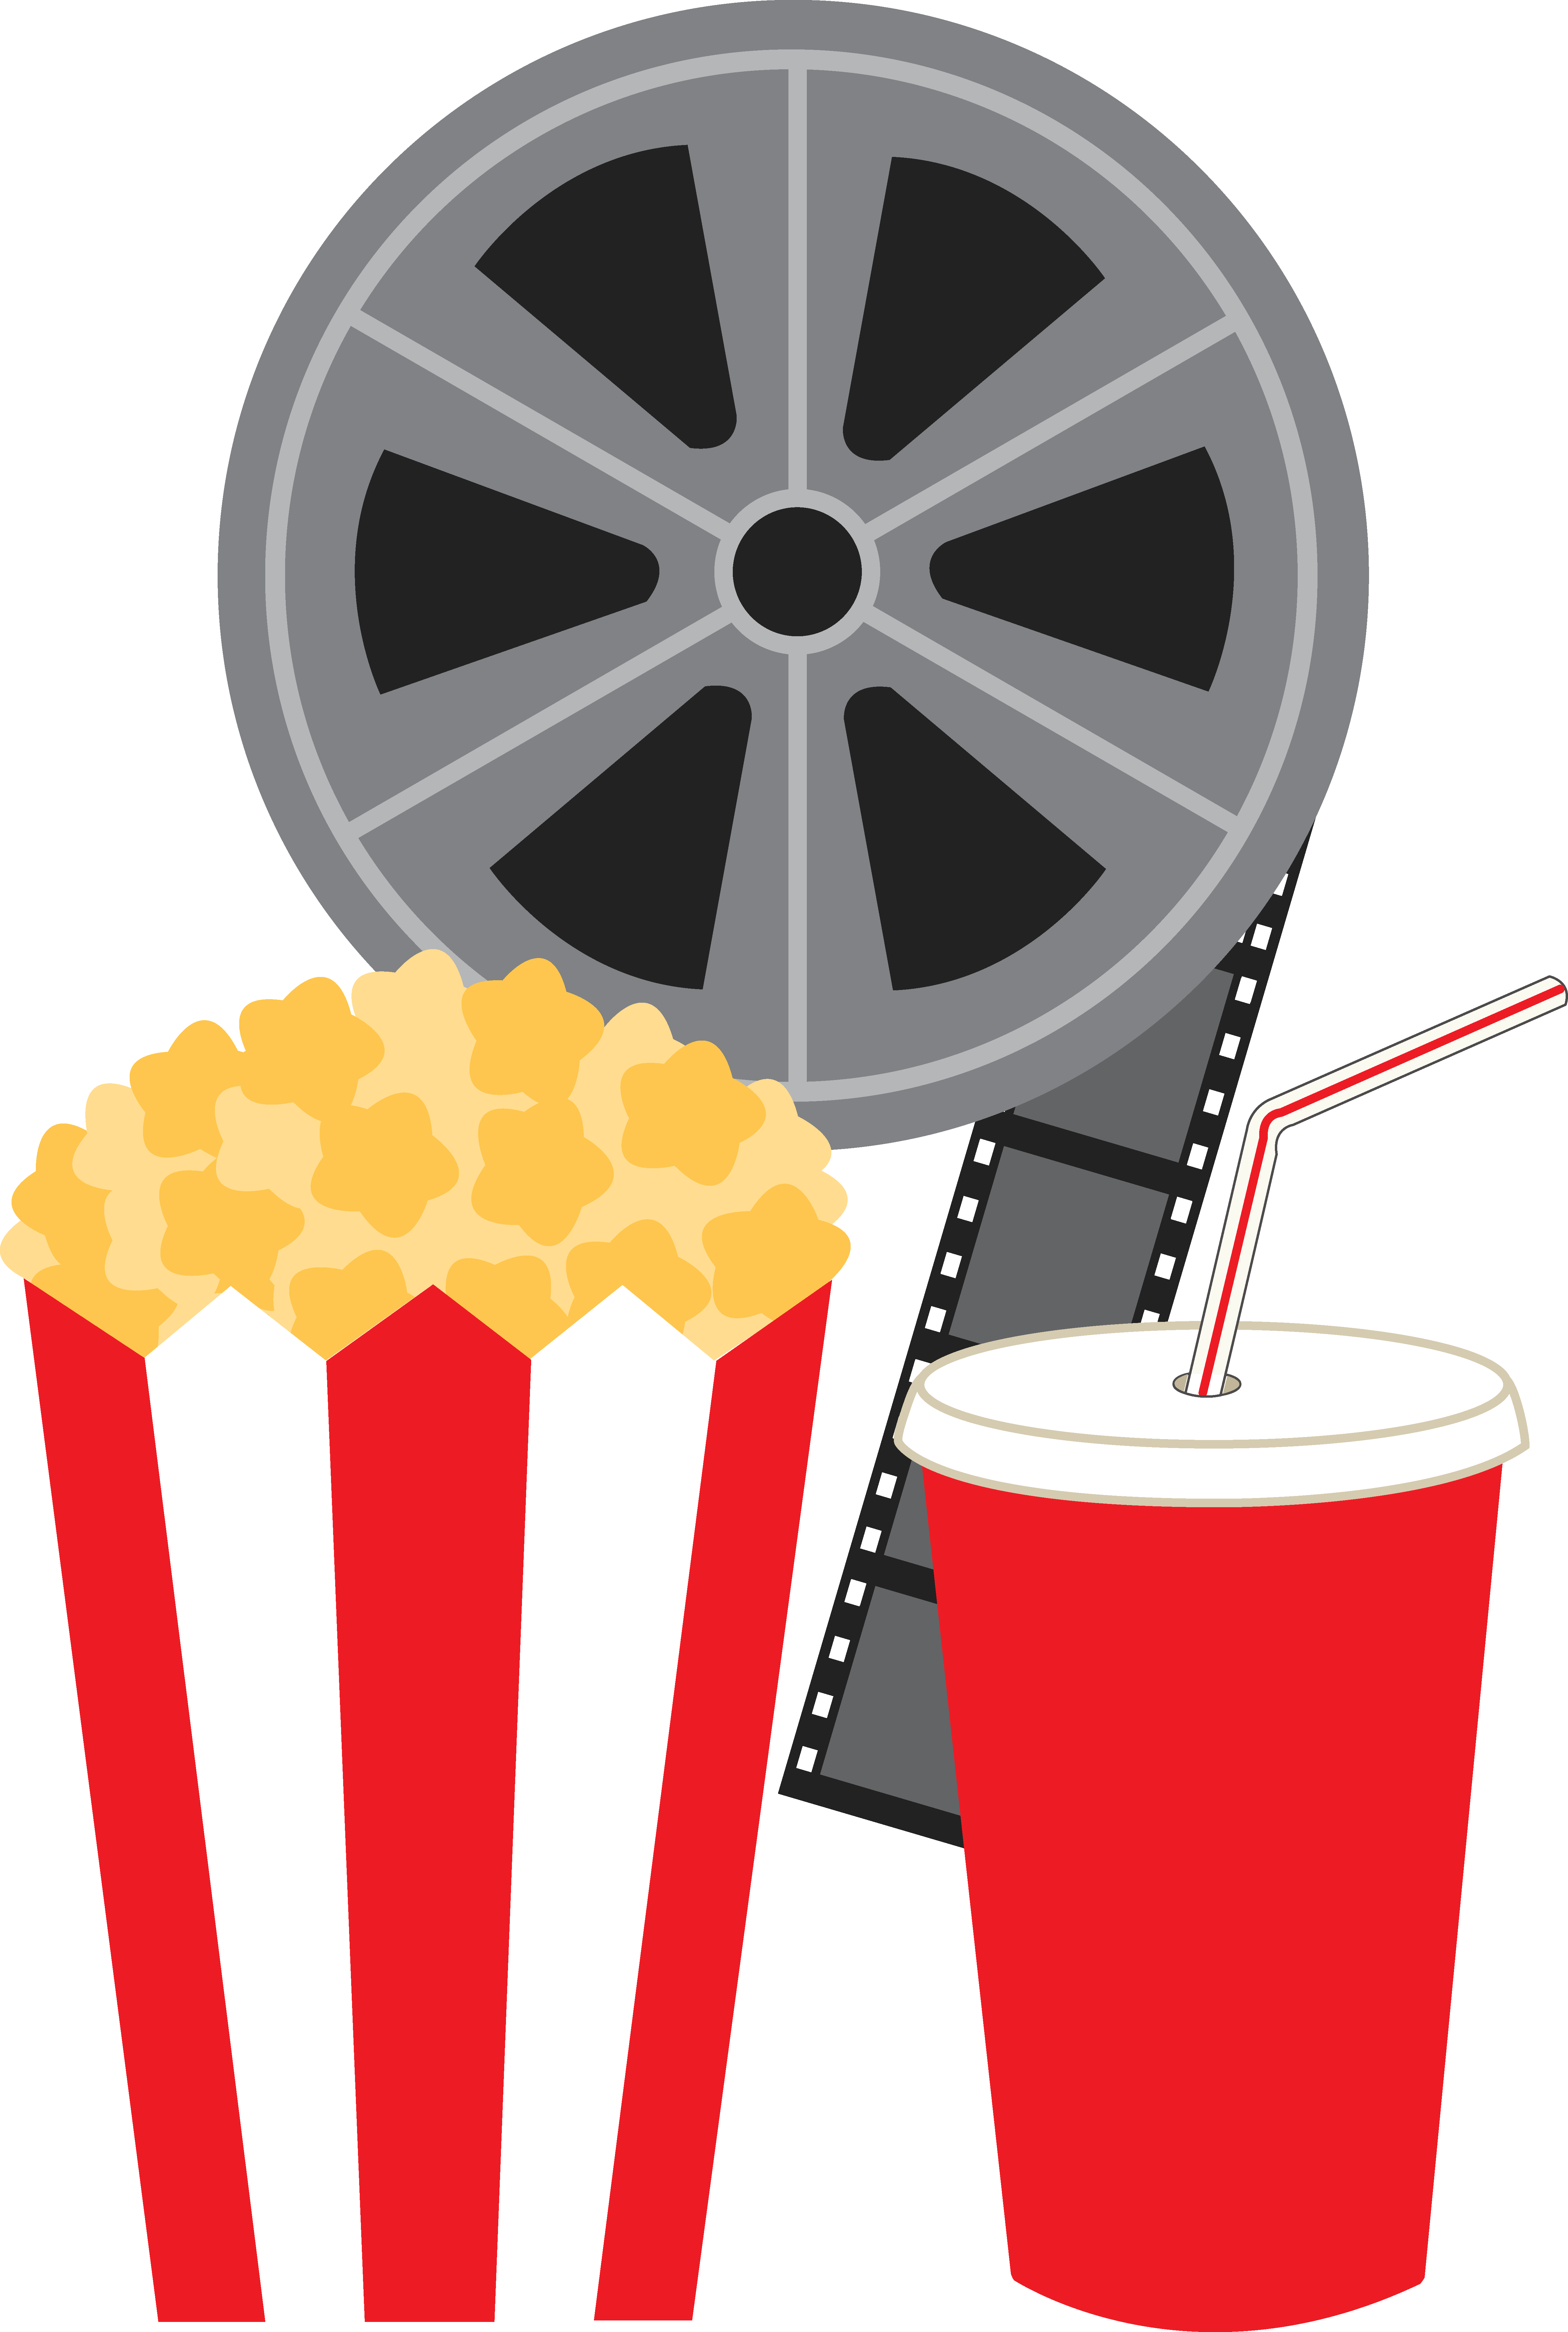 Clipart Movies-Clipart Movies-3